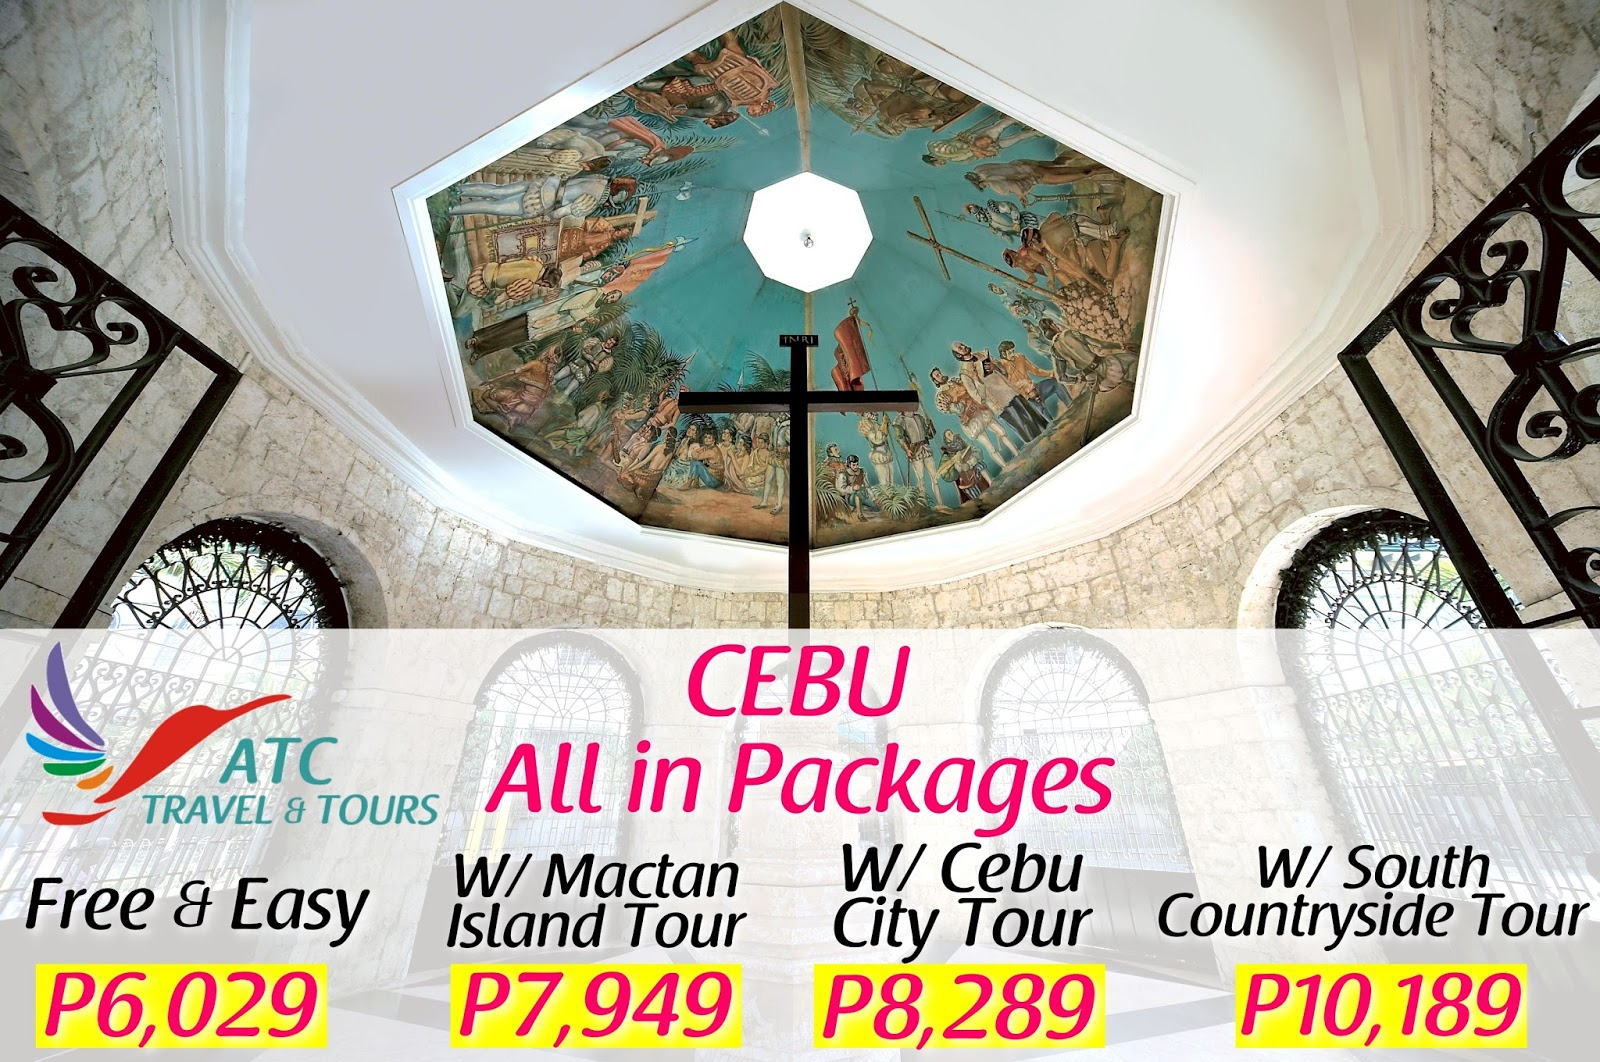 ATC Travel & Tours